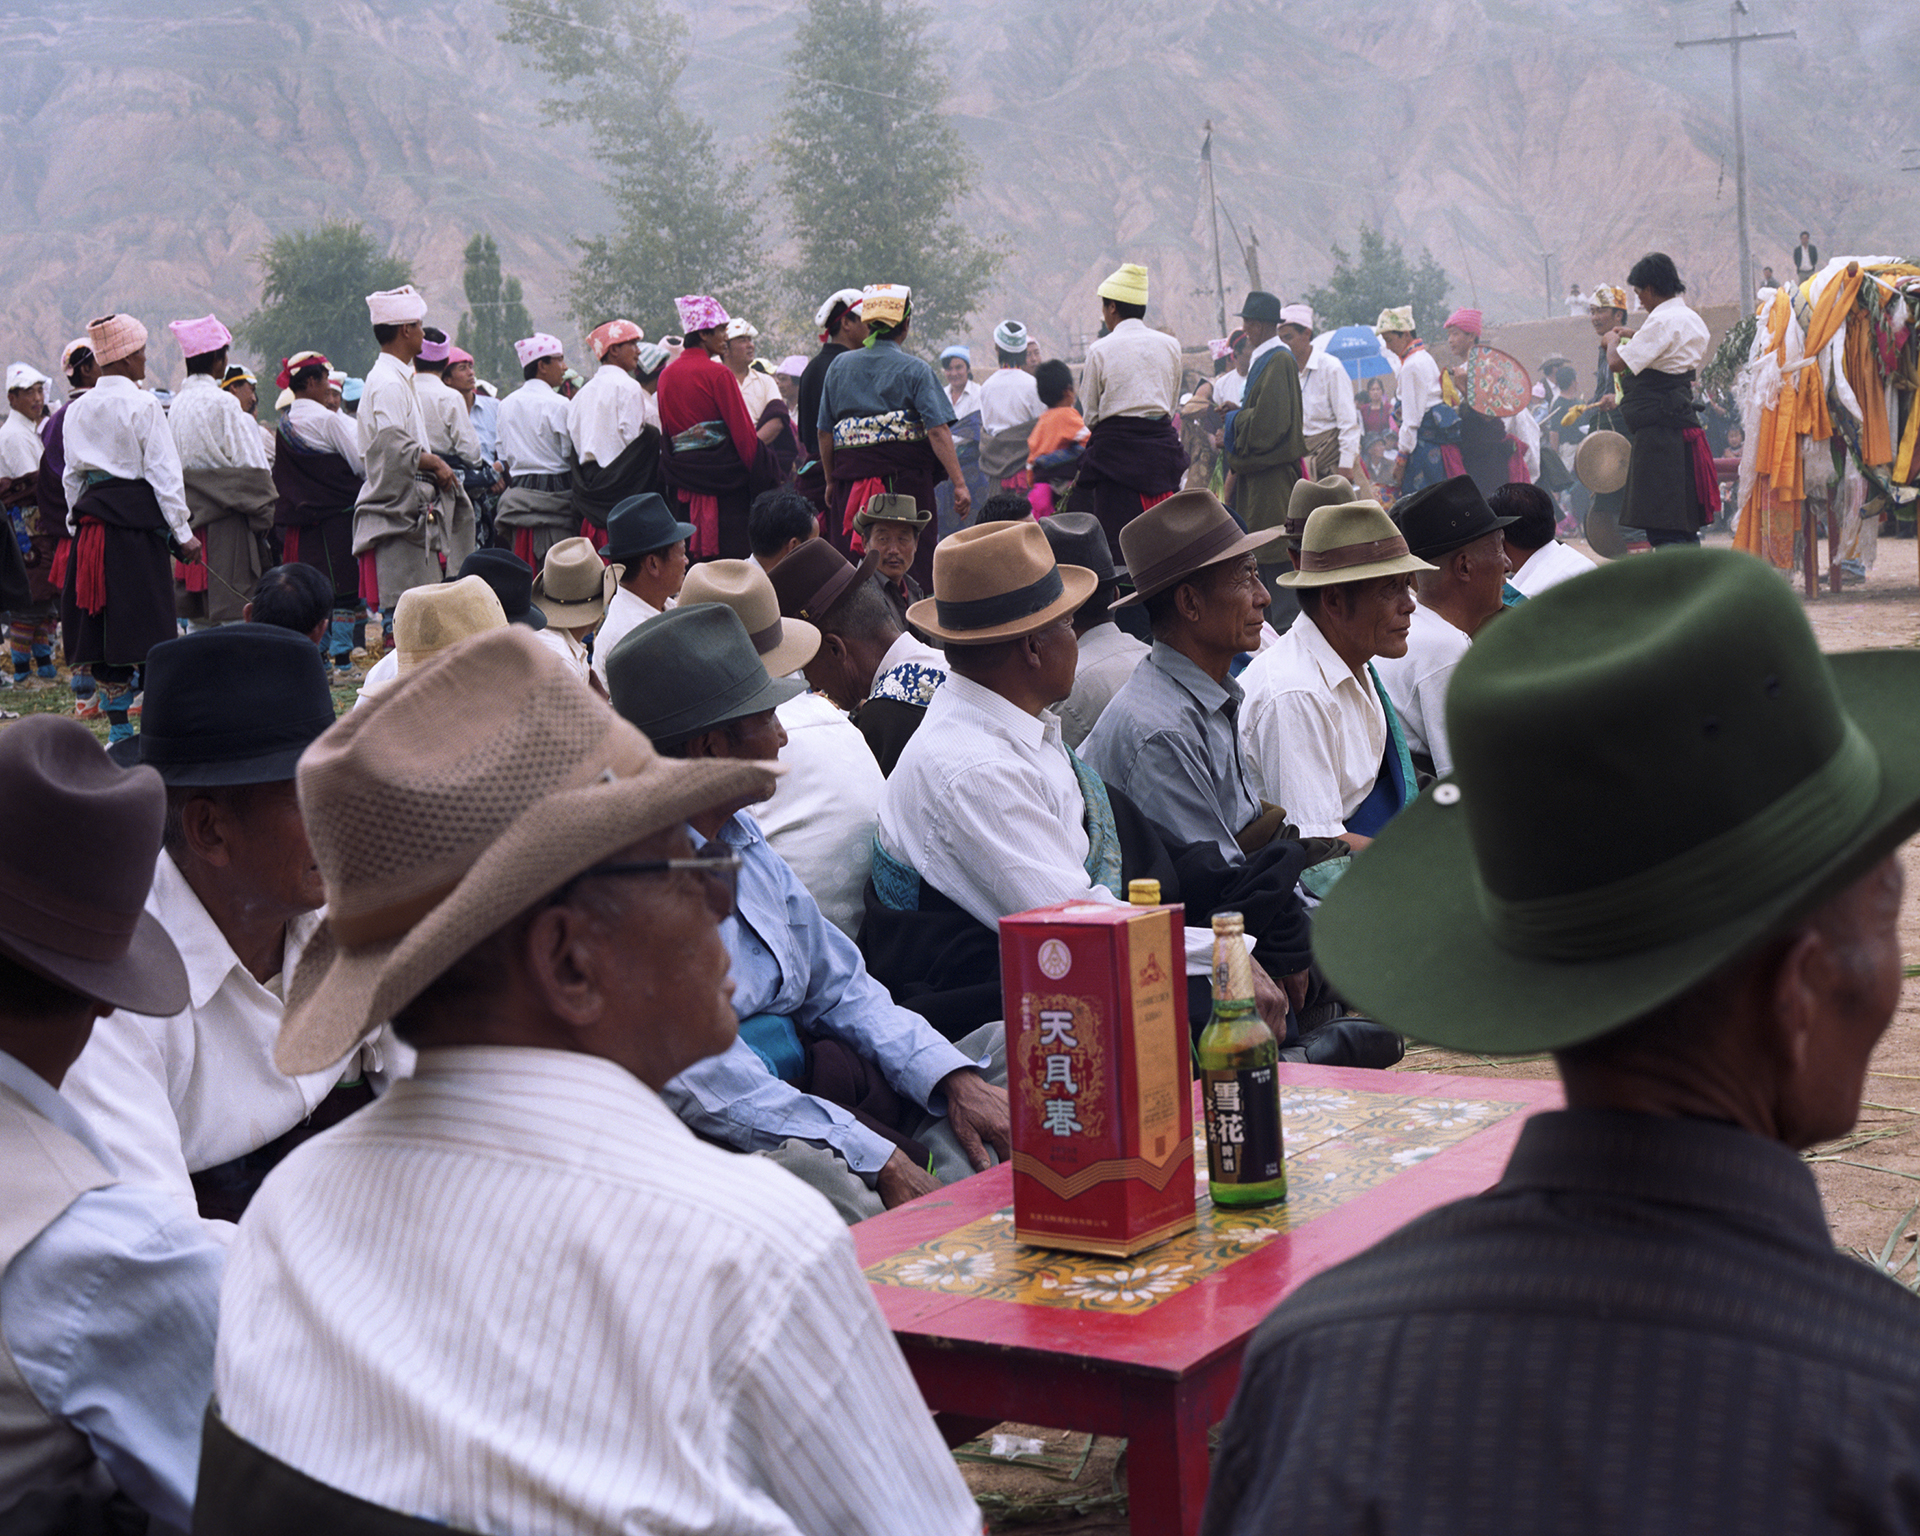 2007 Qinghai -it is festival time and in many villages people are gathering on the grounds of the monastery for the traditional festivities.